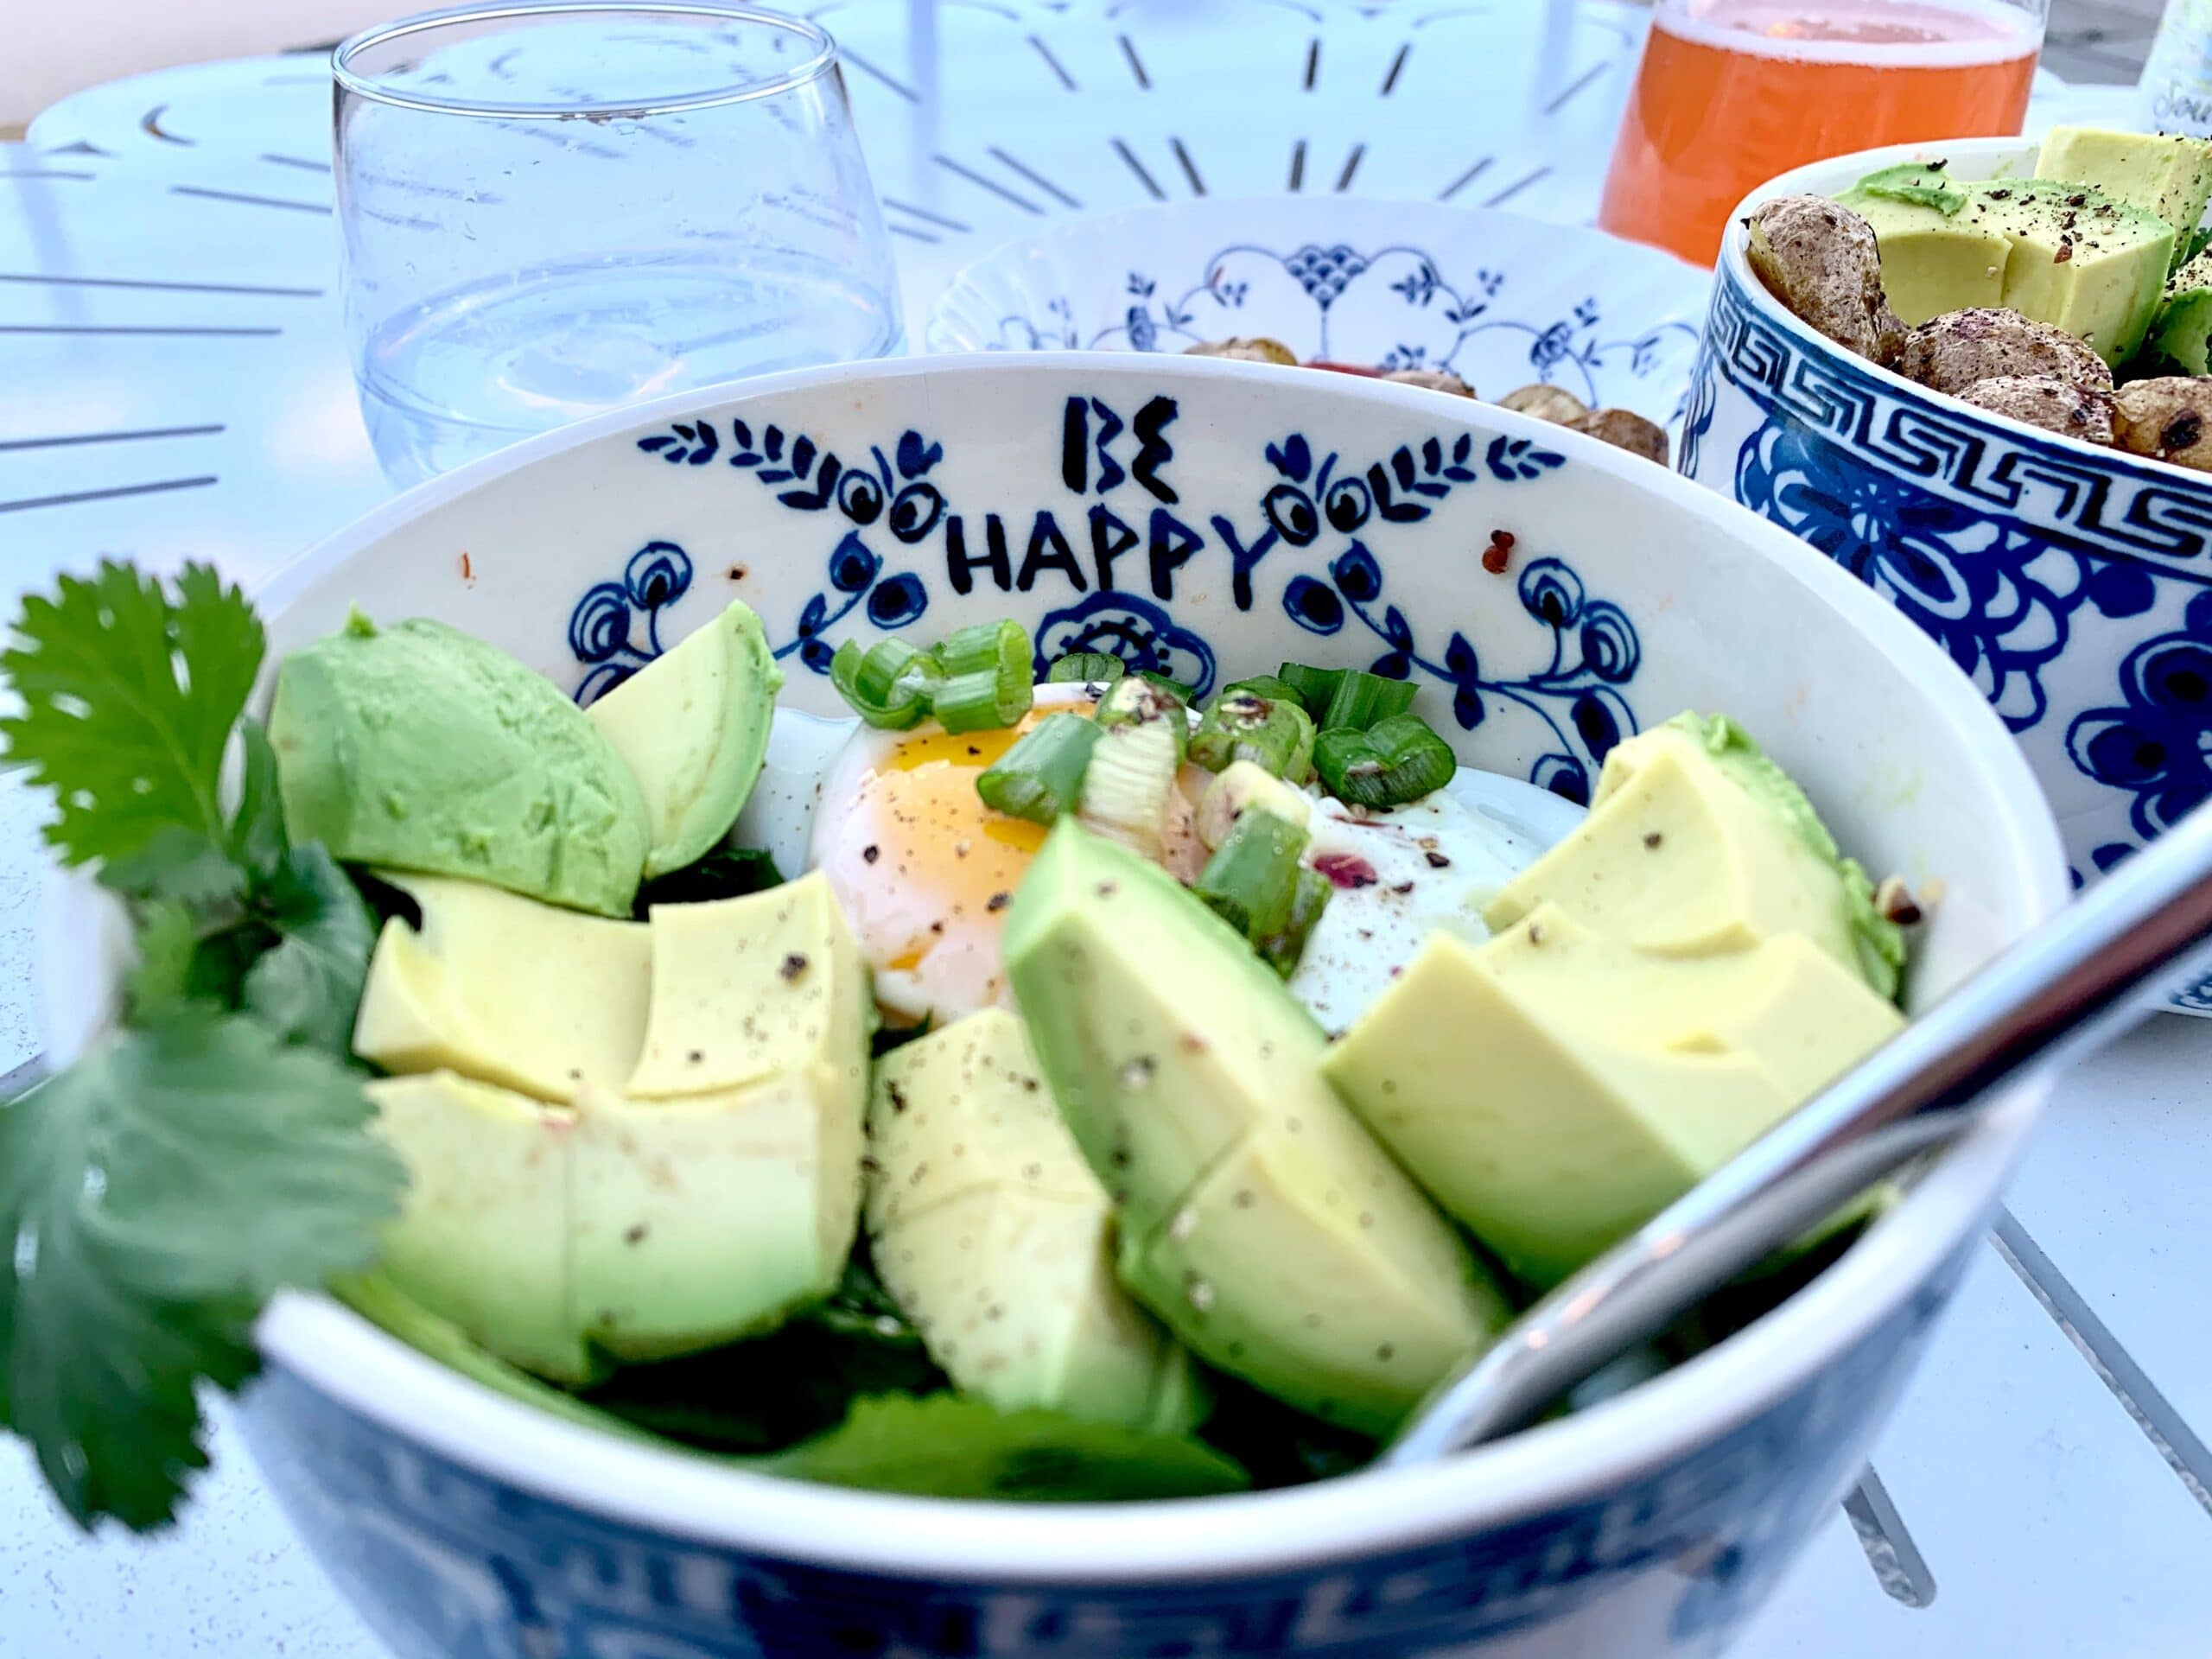 avocado, egg and green onion are great sources of fiber